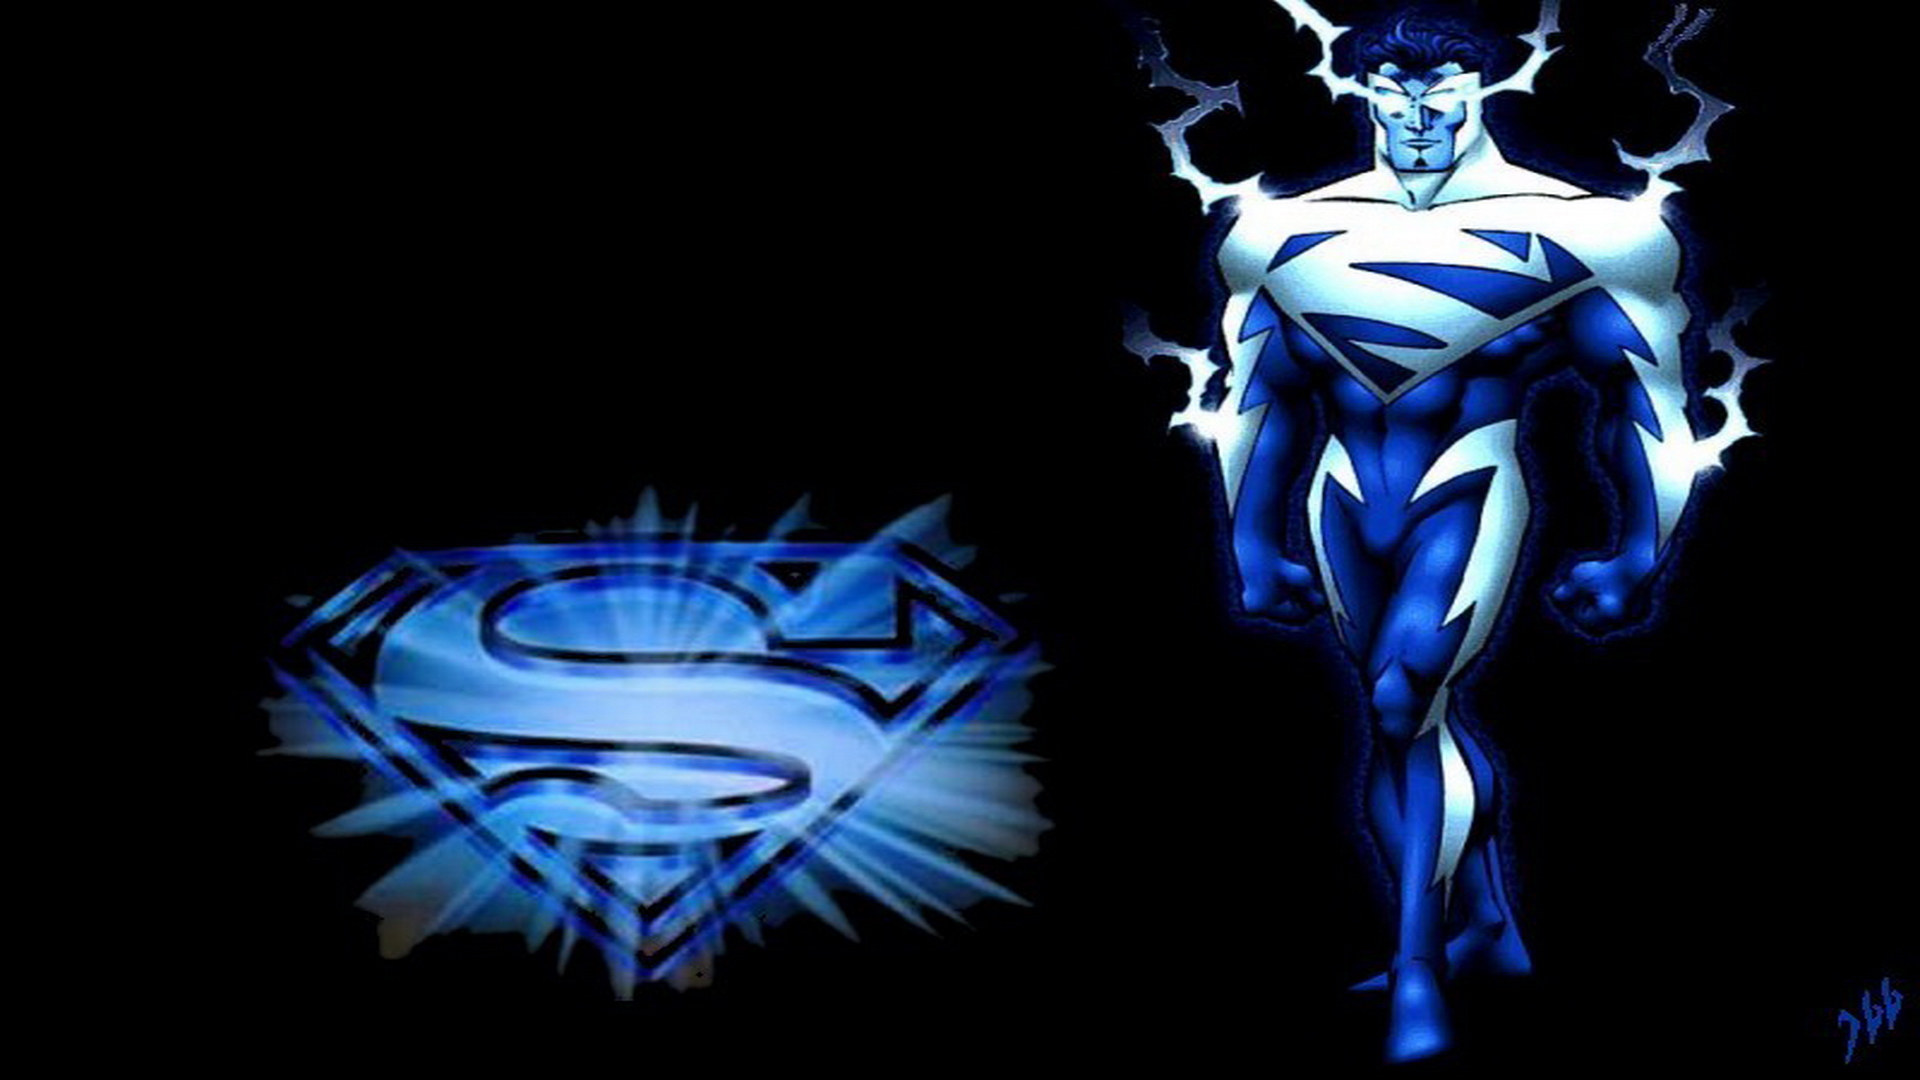 superman hd wallpapers for phone